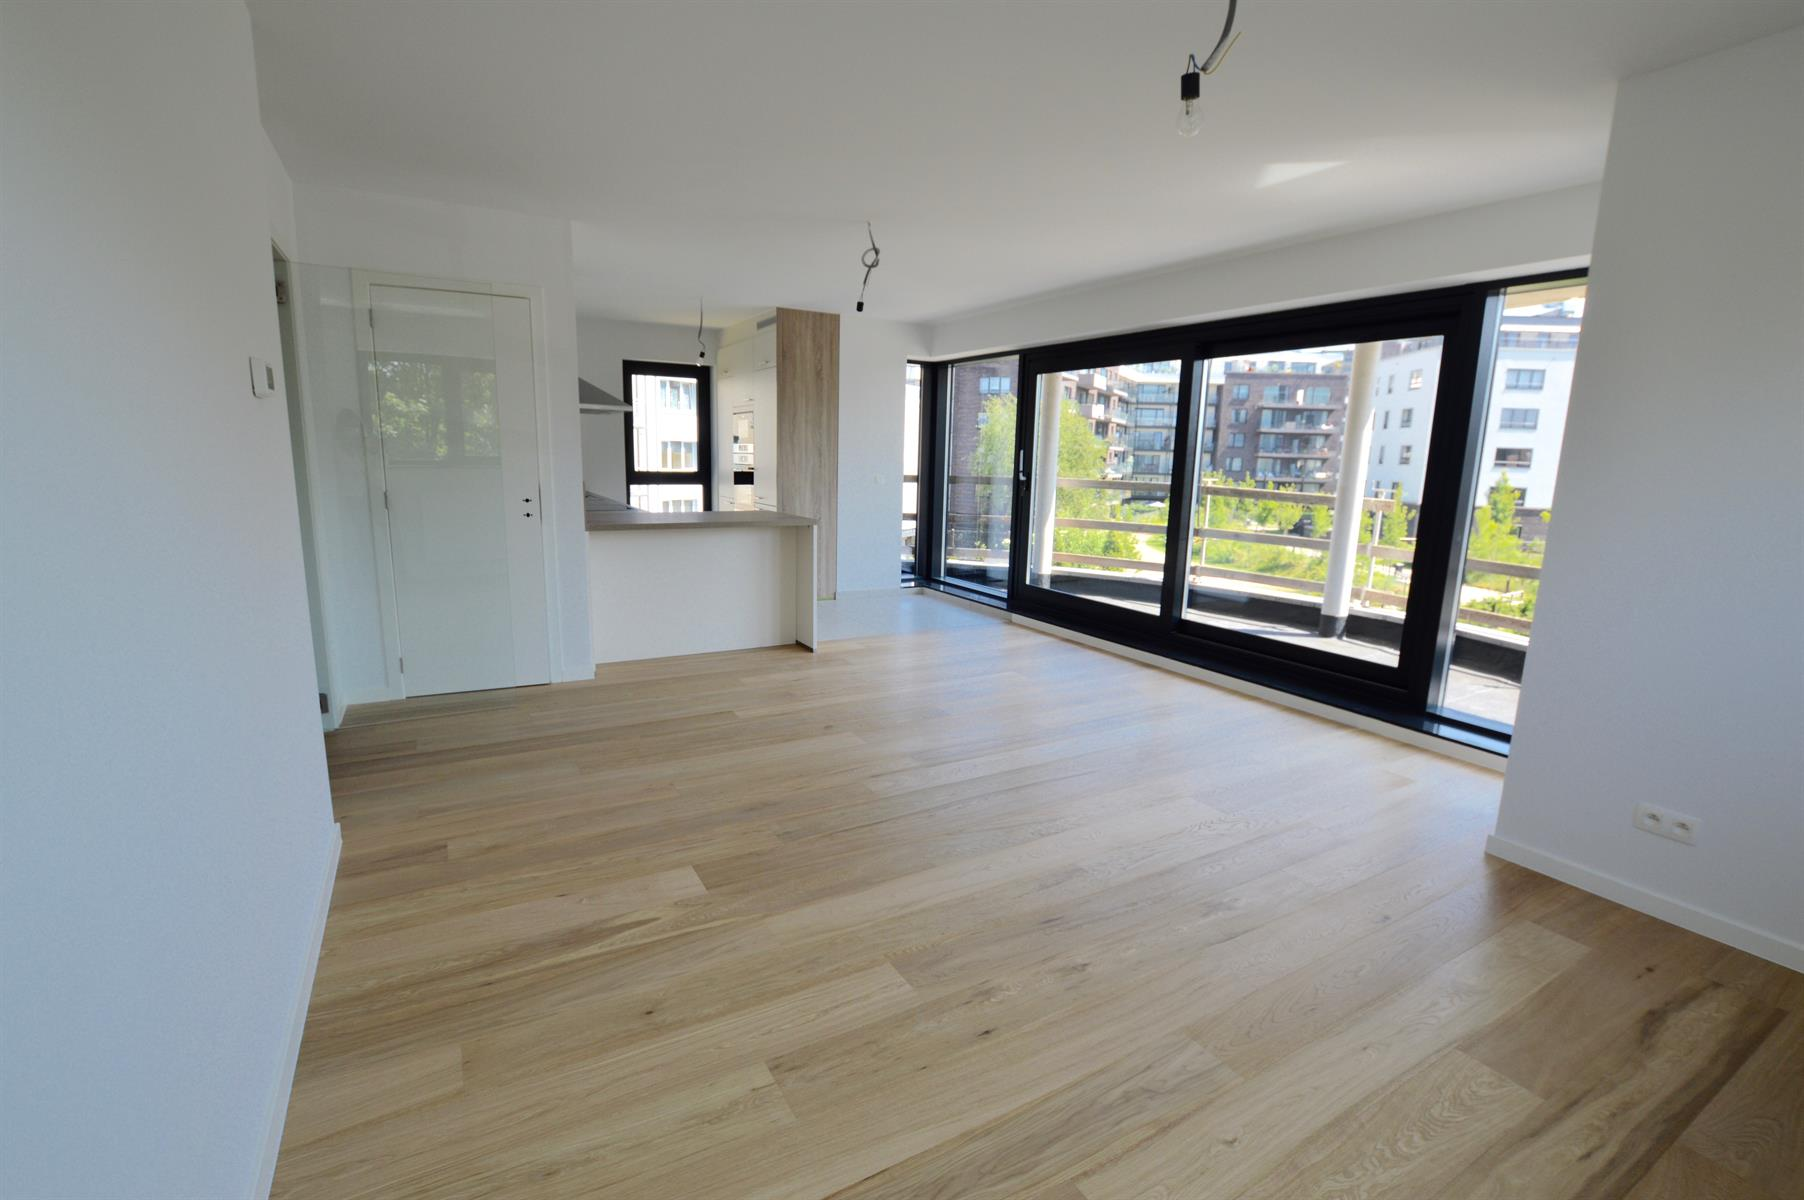 Appartement - Evere - #3999678-1